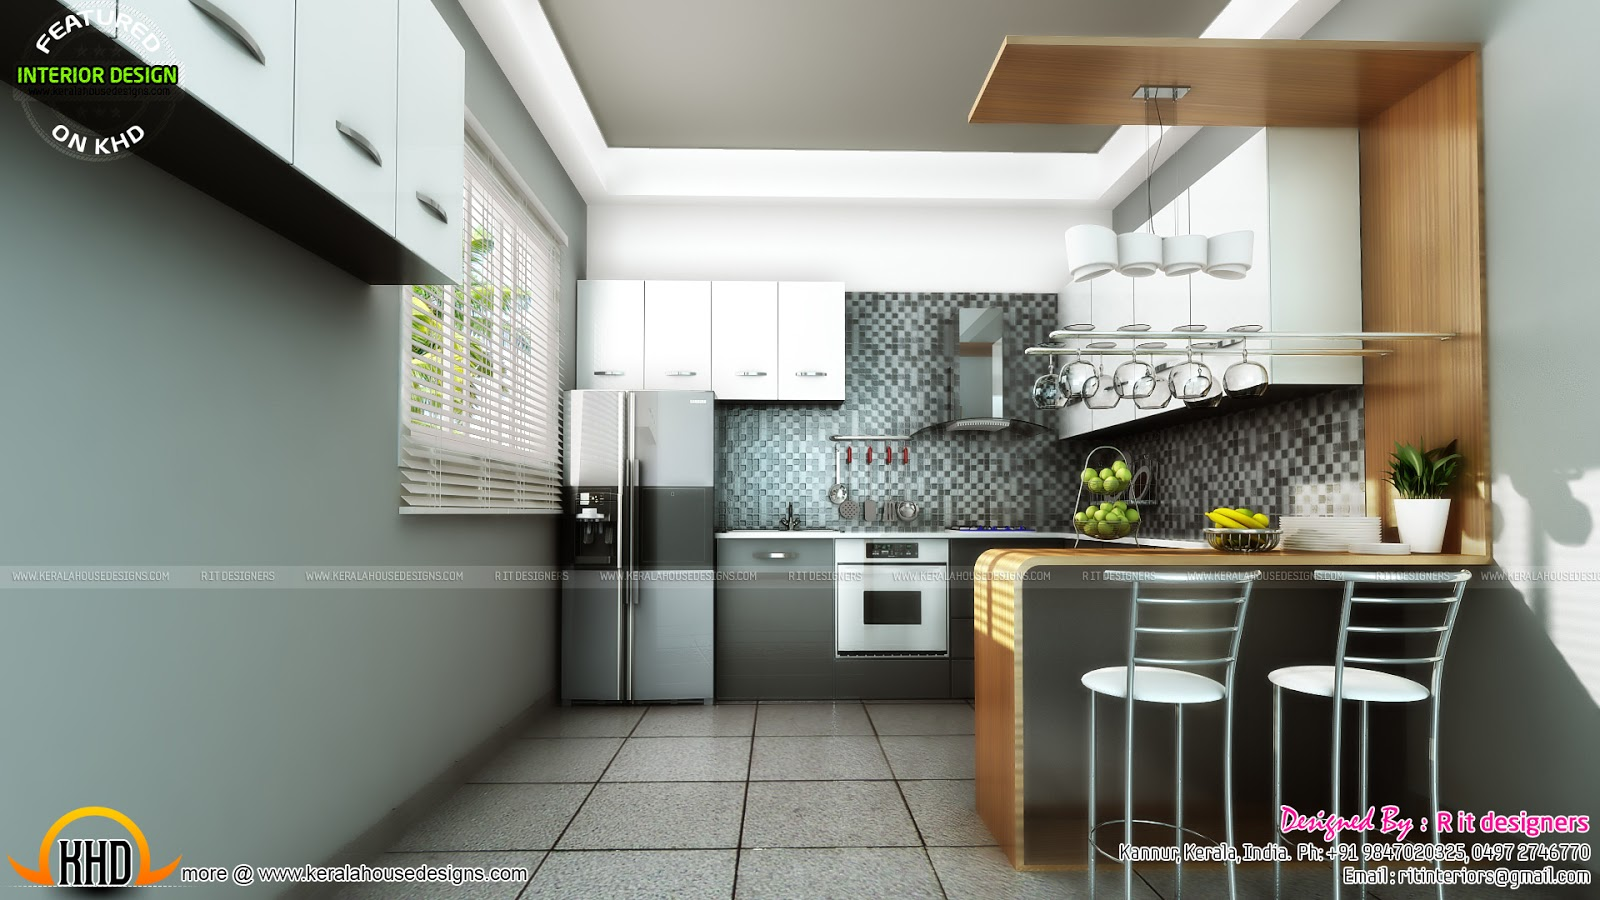 kitchen room interior design study room modern kitchen living interior kerala home design and floor plans 2573